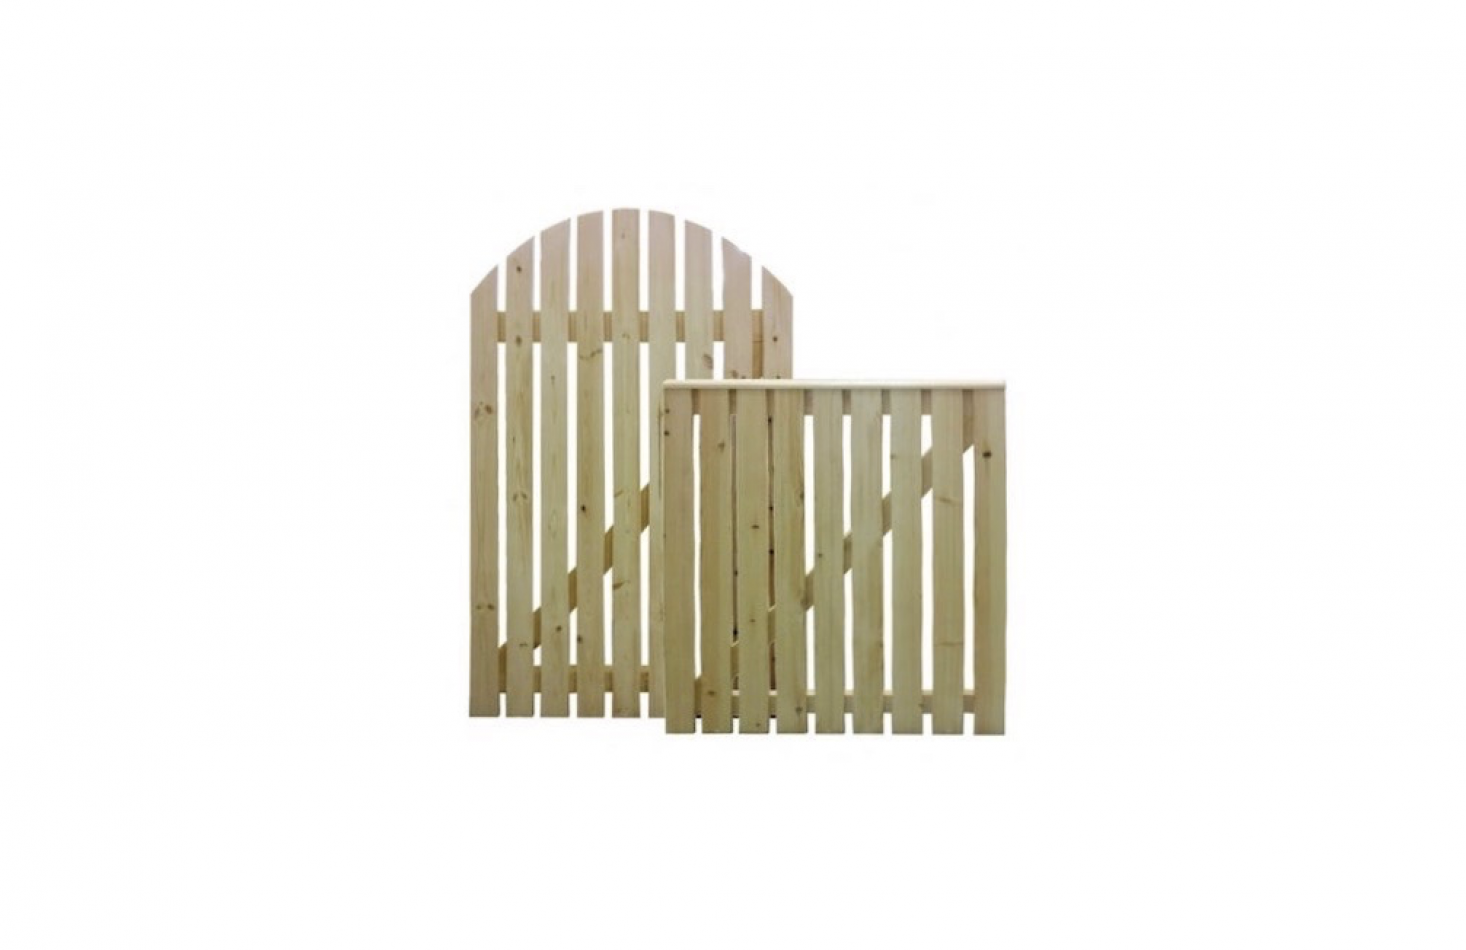 Delightful A Pine Wood Picket Gate With Either A Straight Or Rounded Arch Top Is  Available In